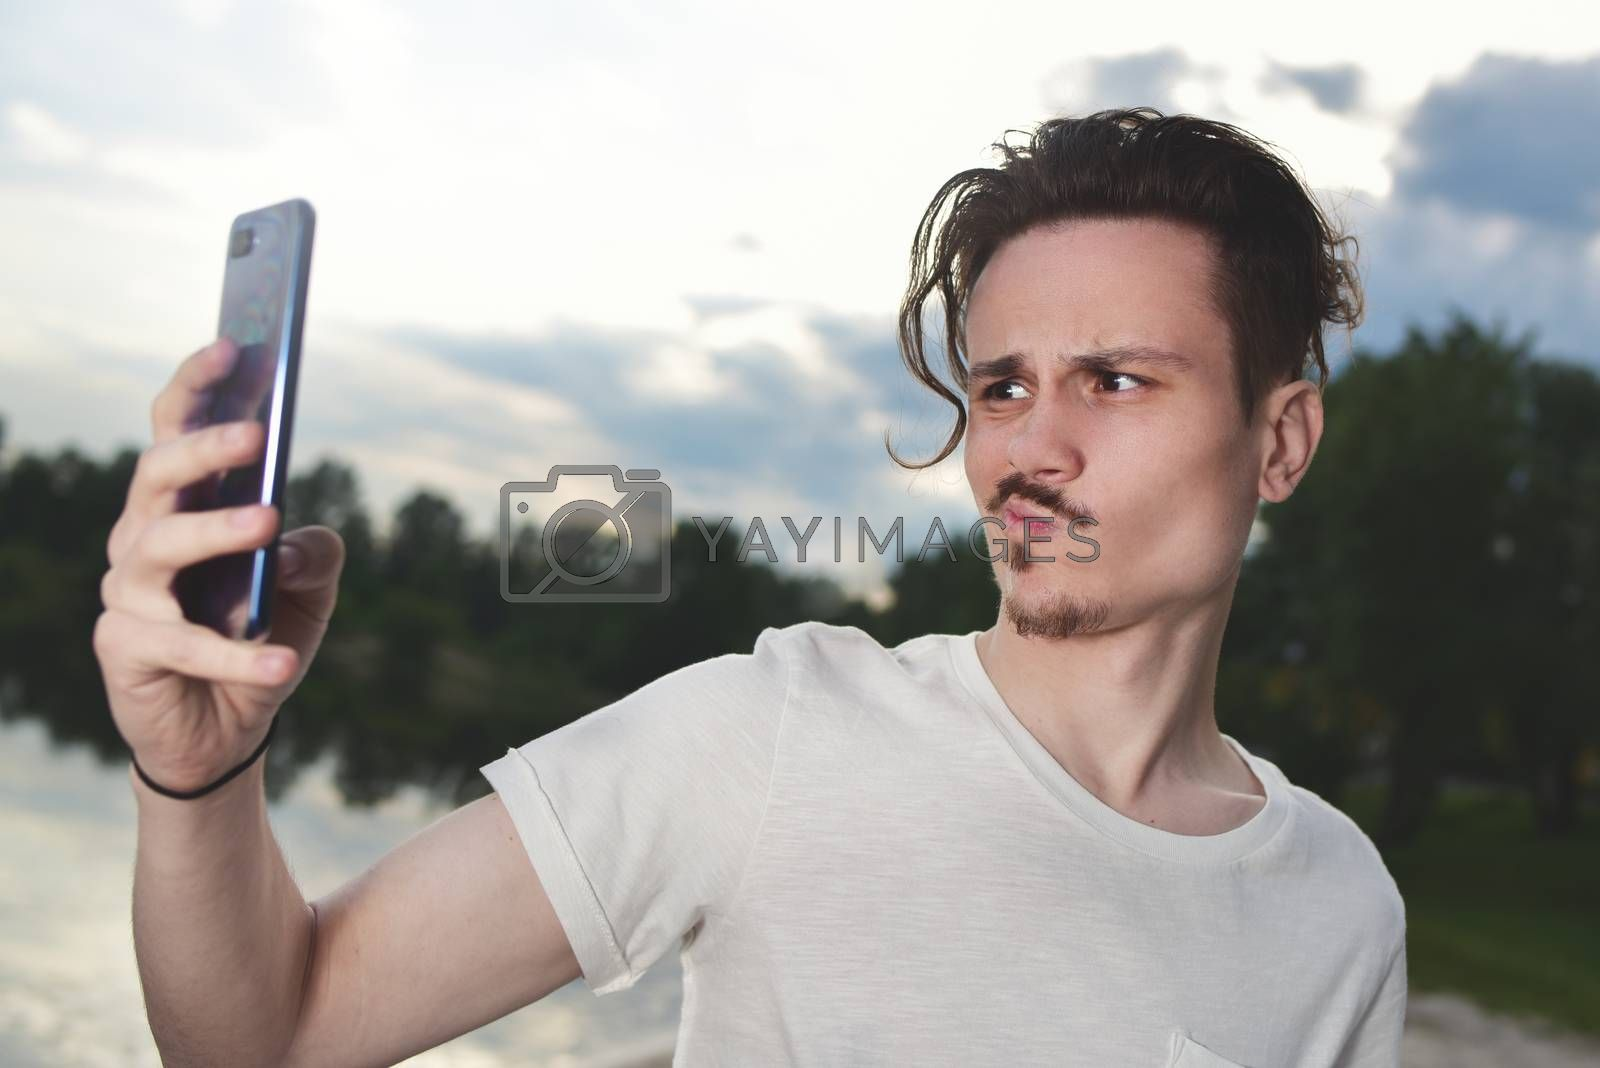 the guy grimaces into the camera.frustrated young handsome guy makes unsuccessful selfie on his smartphone in nature,